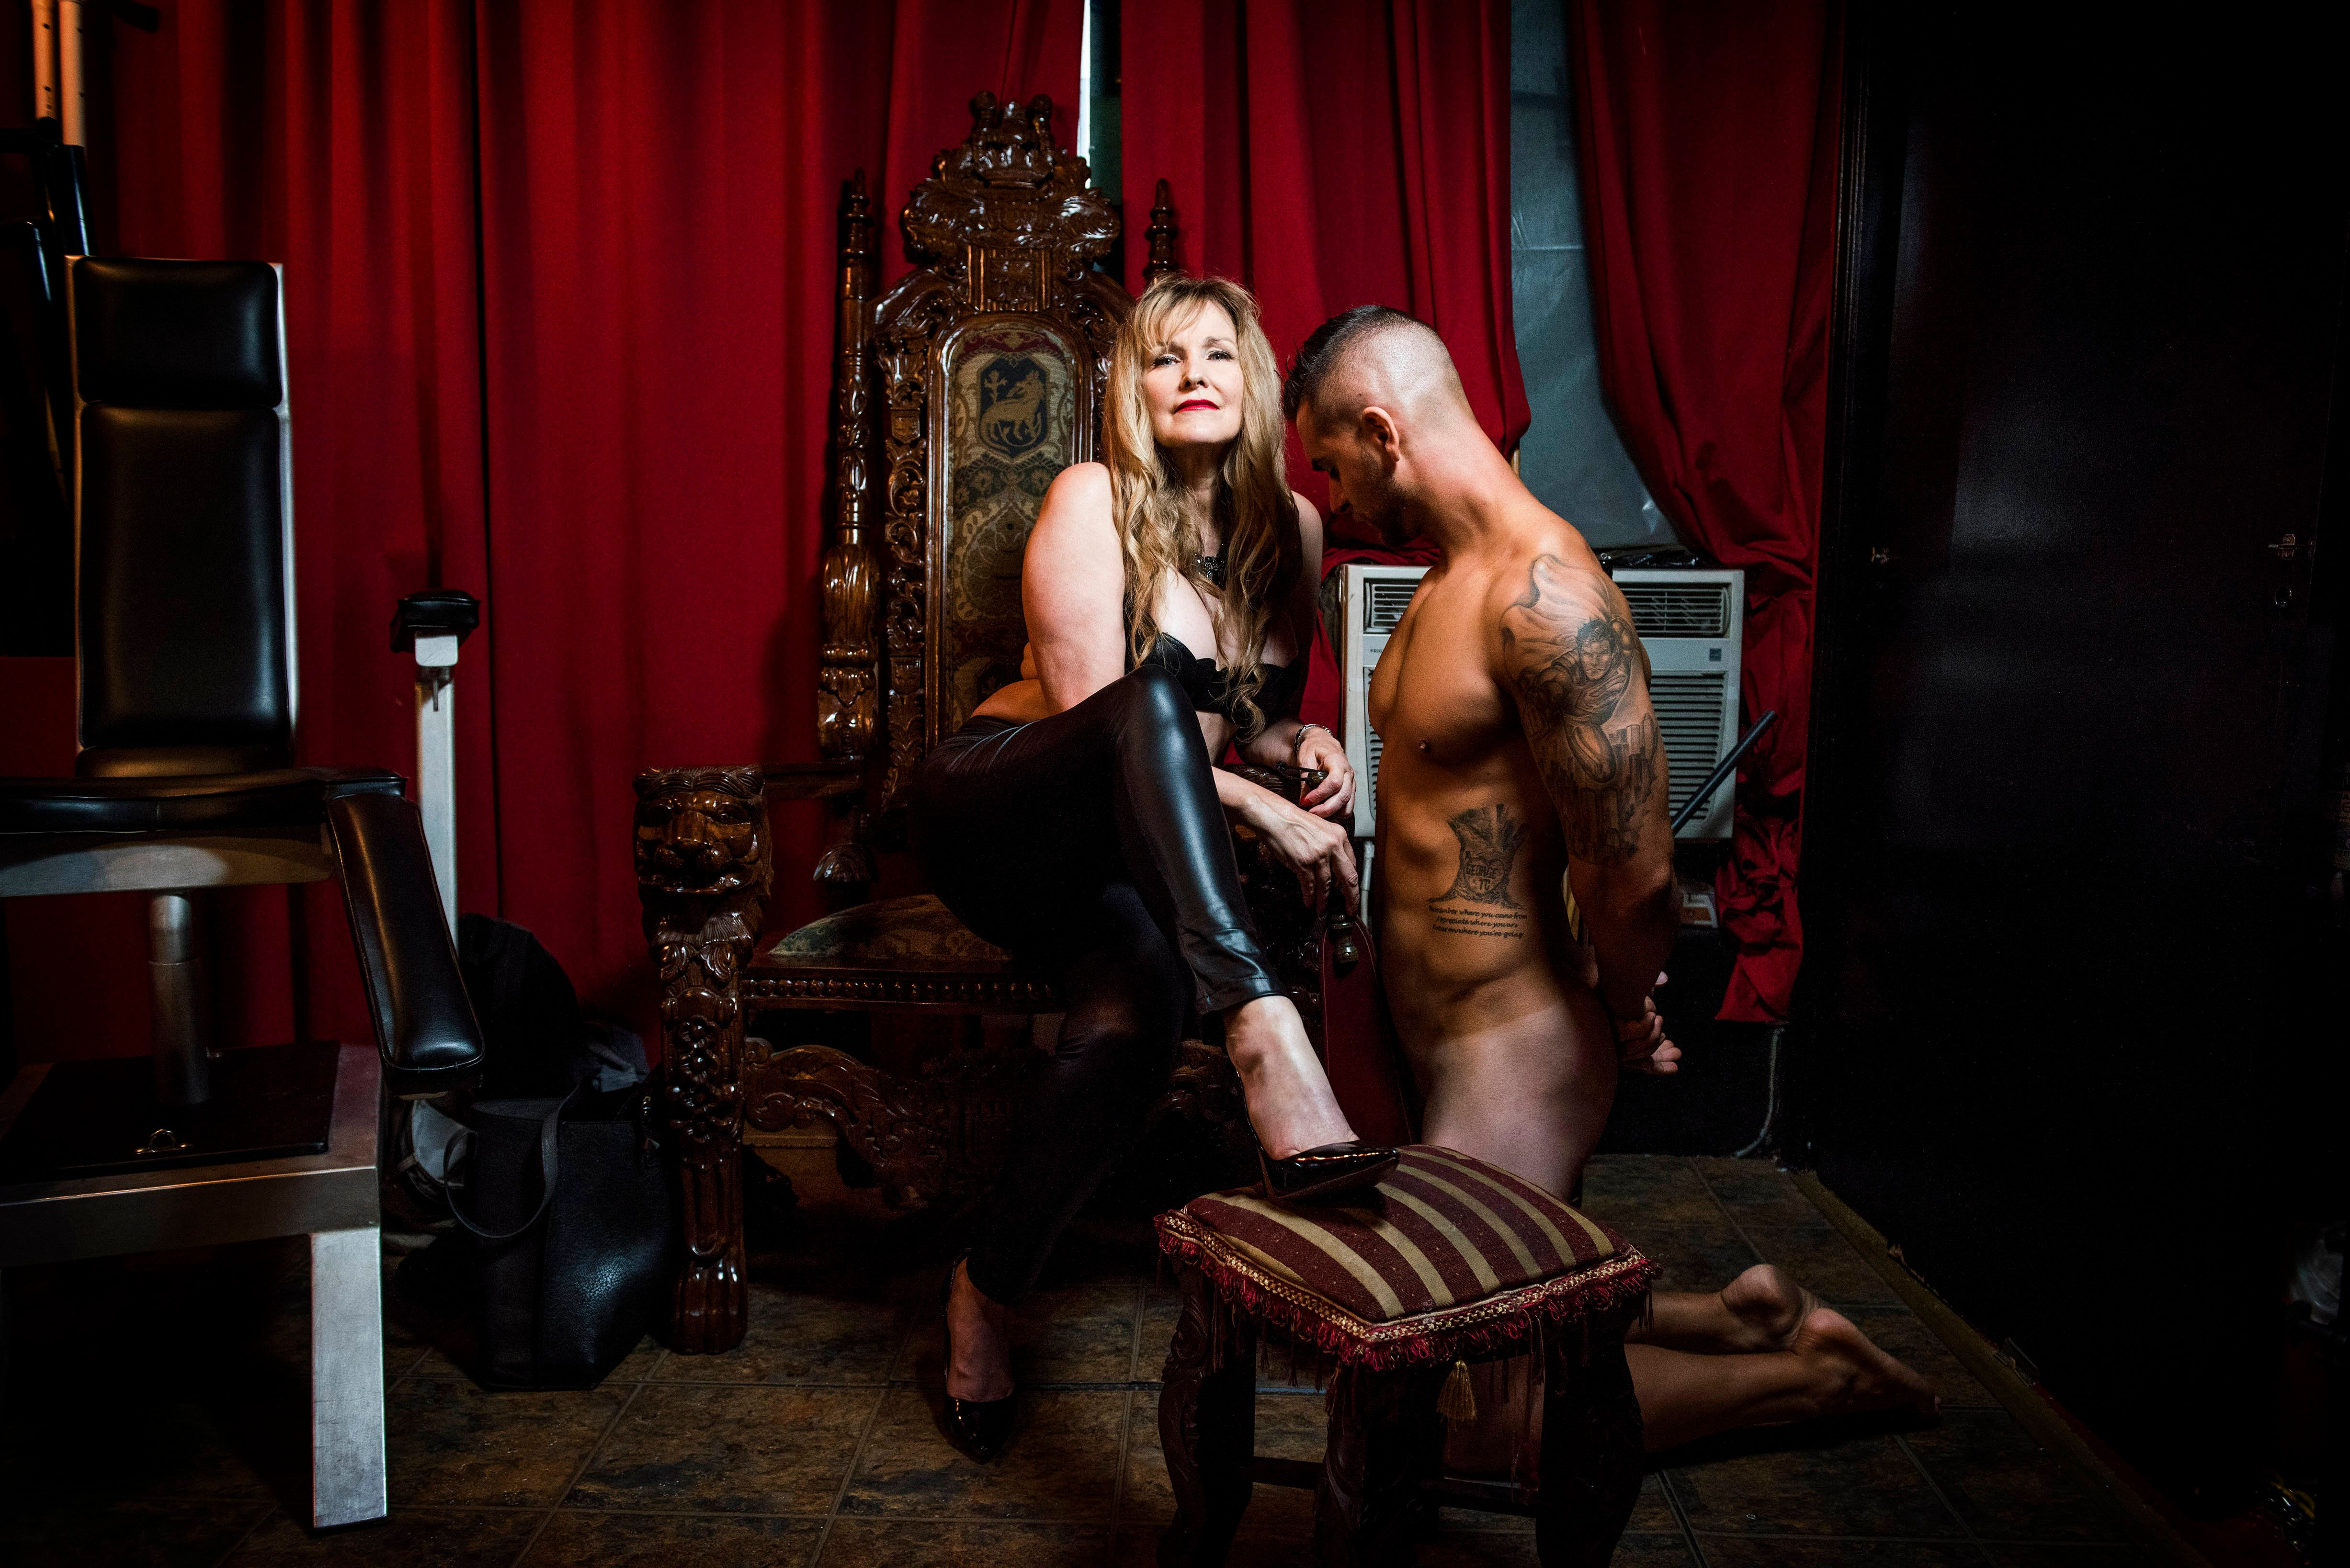 15 Unbelievable Photos Of A 60-Year-Old Dominatrix With Her Client